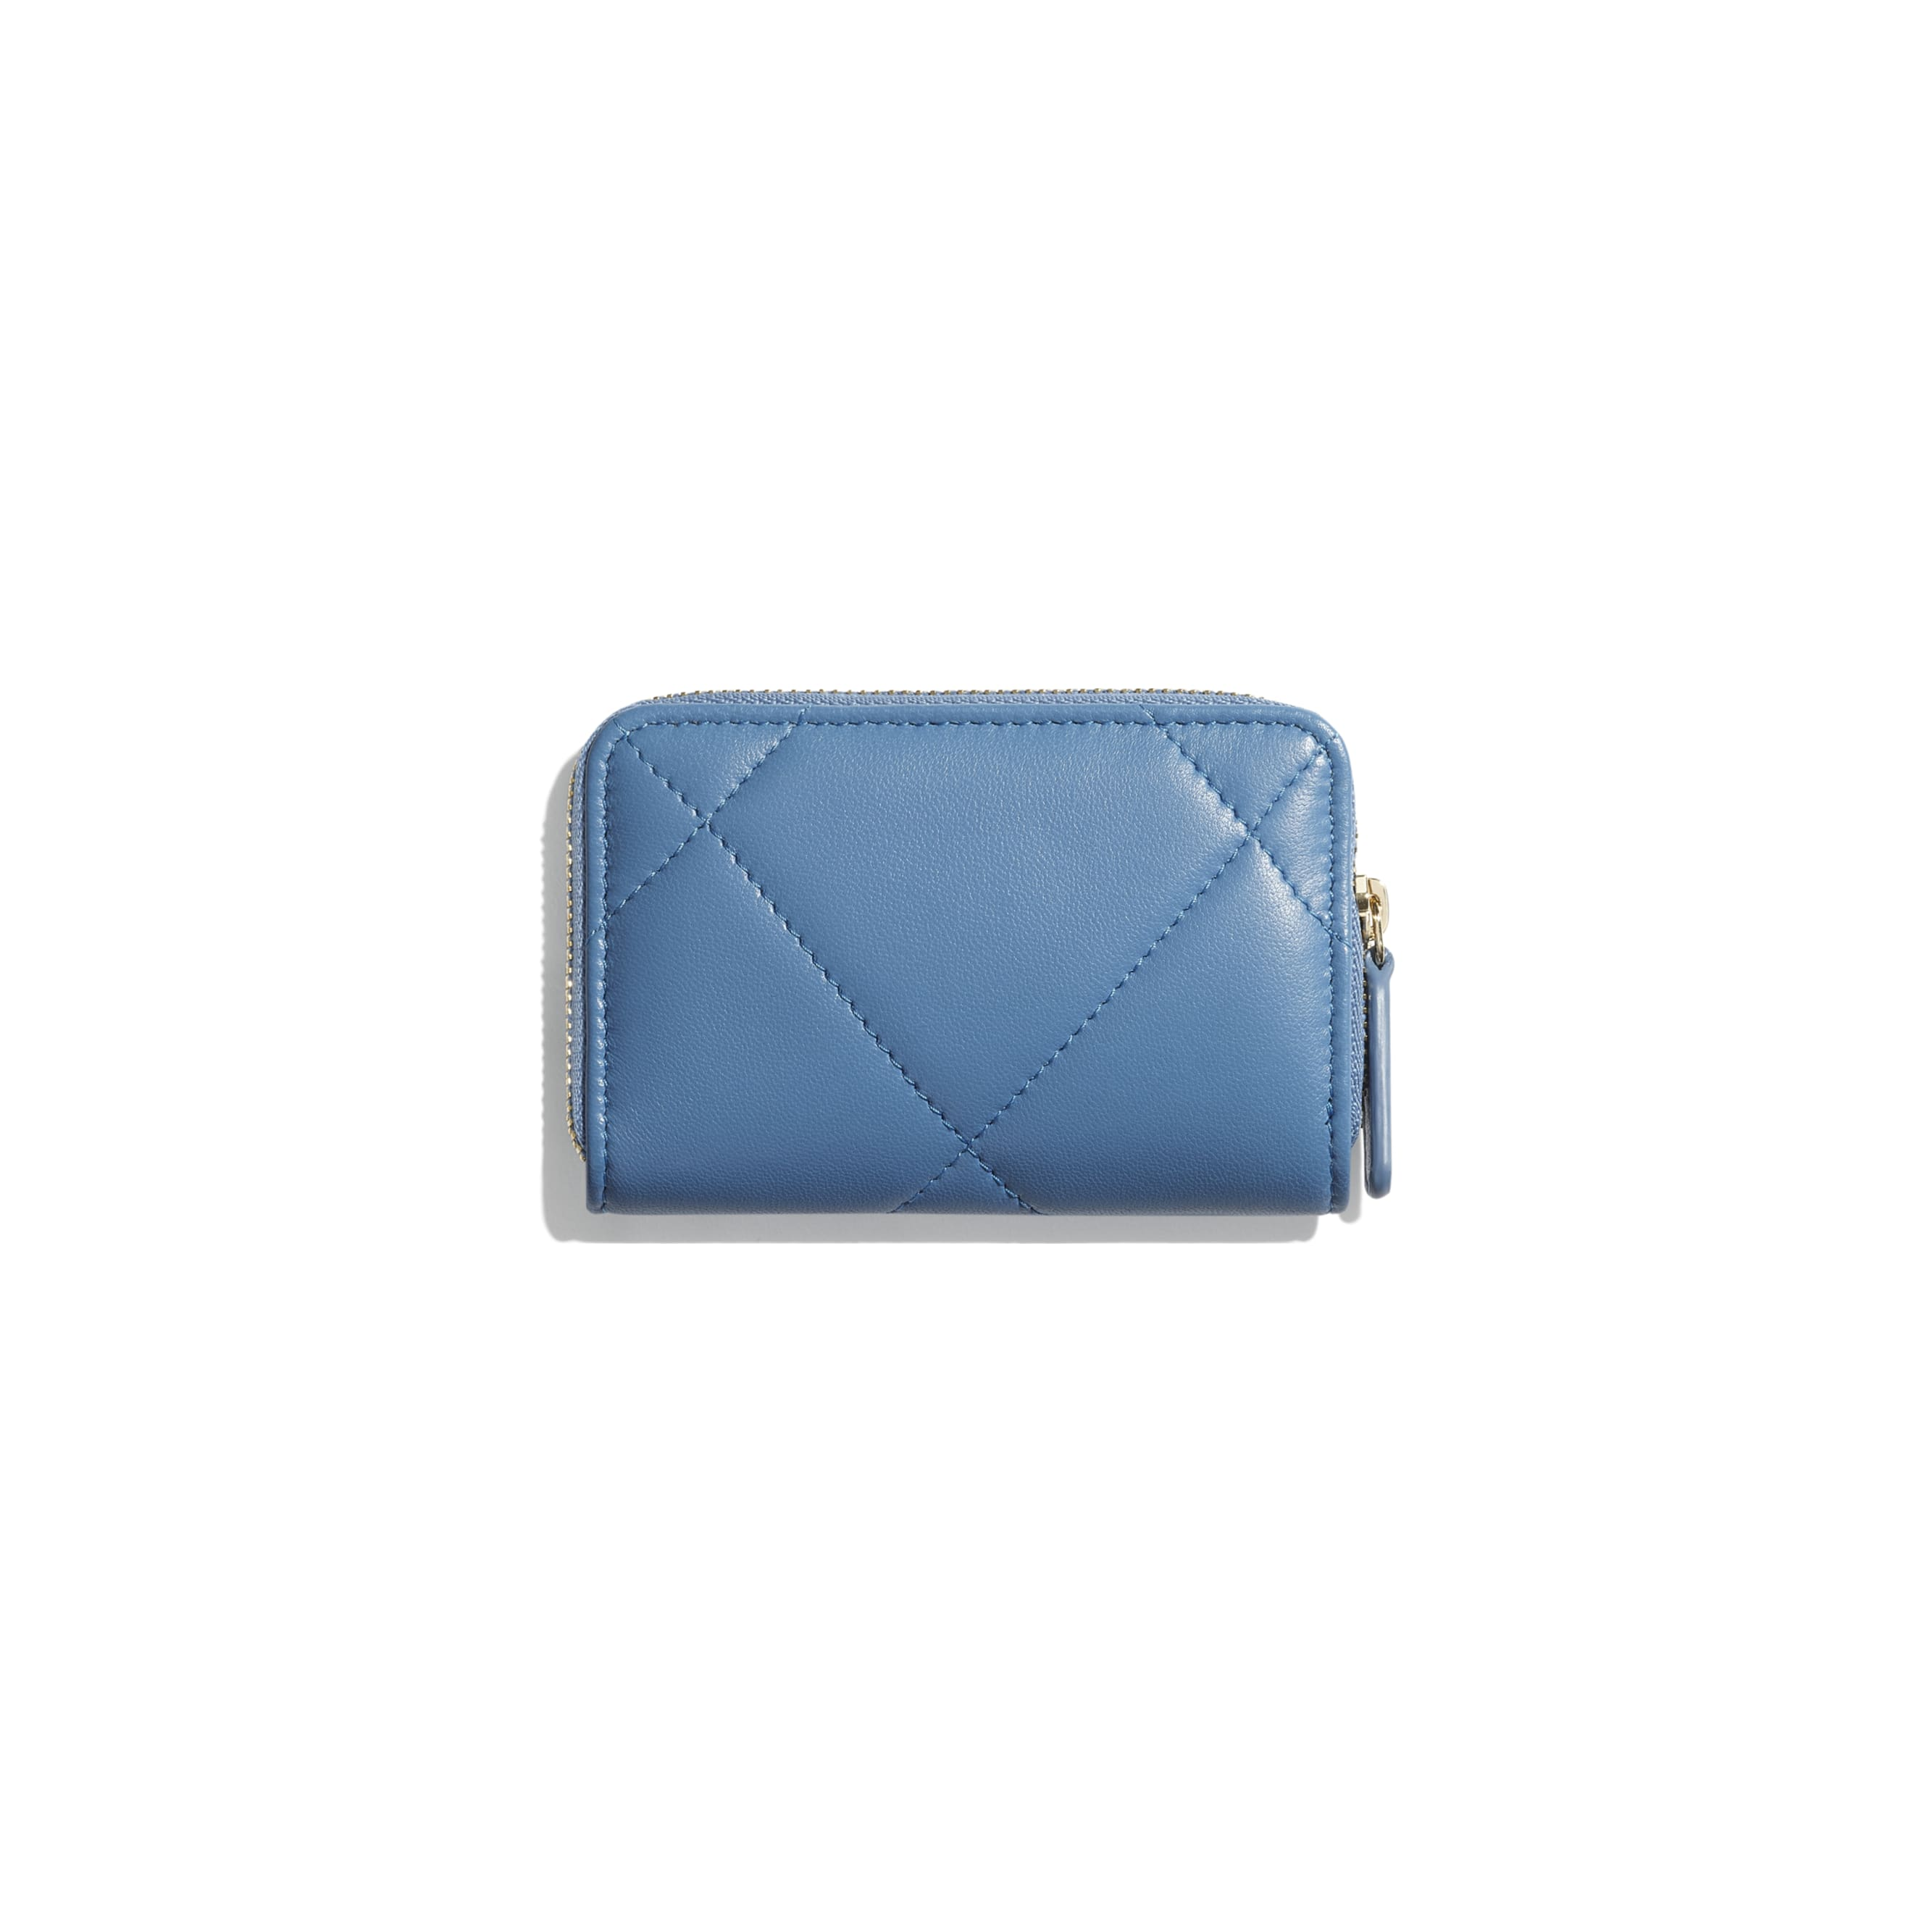 CHANEL 19 Zipped Coin Purse - Blue - Lambskin, Gold-Tone, Silver-Tone & Ruthenium-Finish Metal - CHANEL - Alternative view - see standard sized version